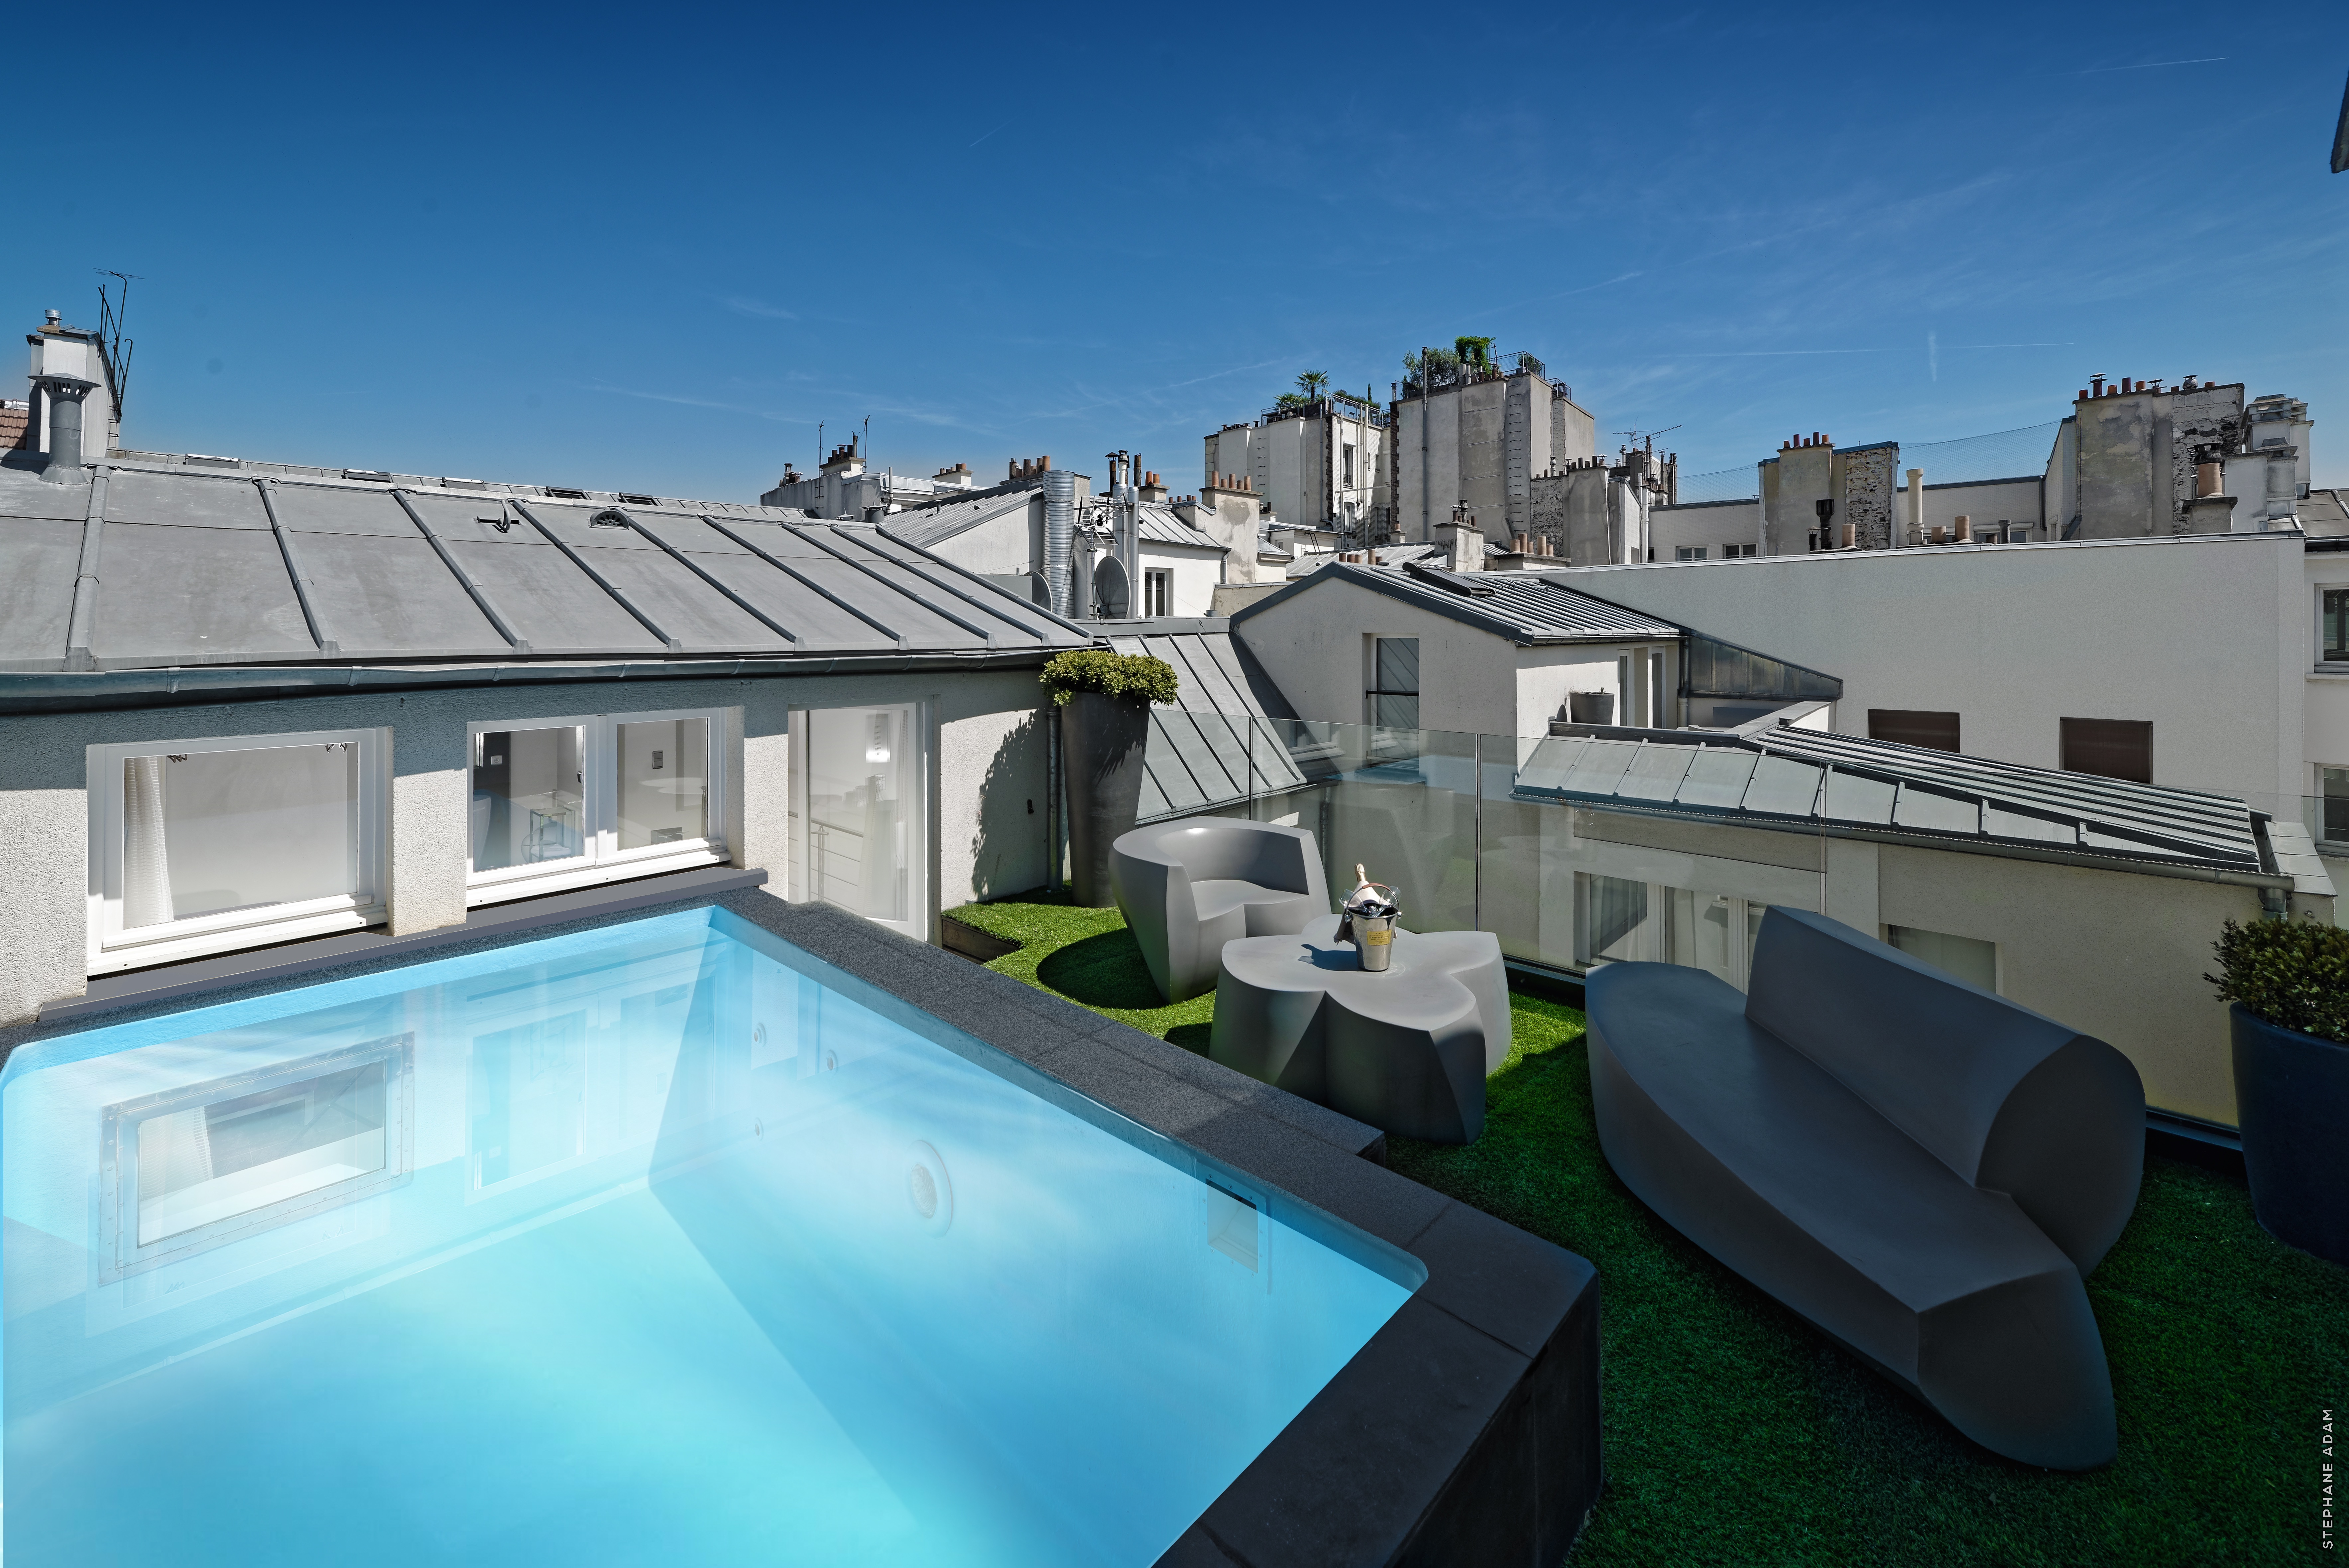 38/CHAMBRES  SUITES/Suite Piscine/1K PARIS POOL SUITE PISCINE 332 Room_Day_01.jpg